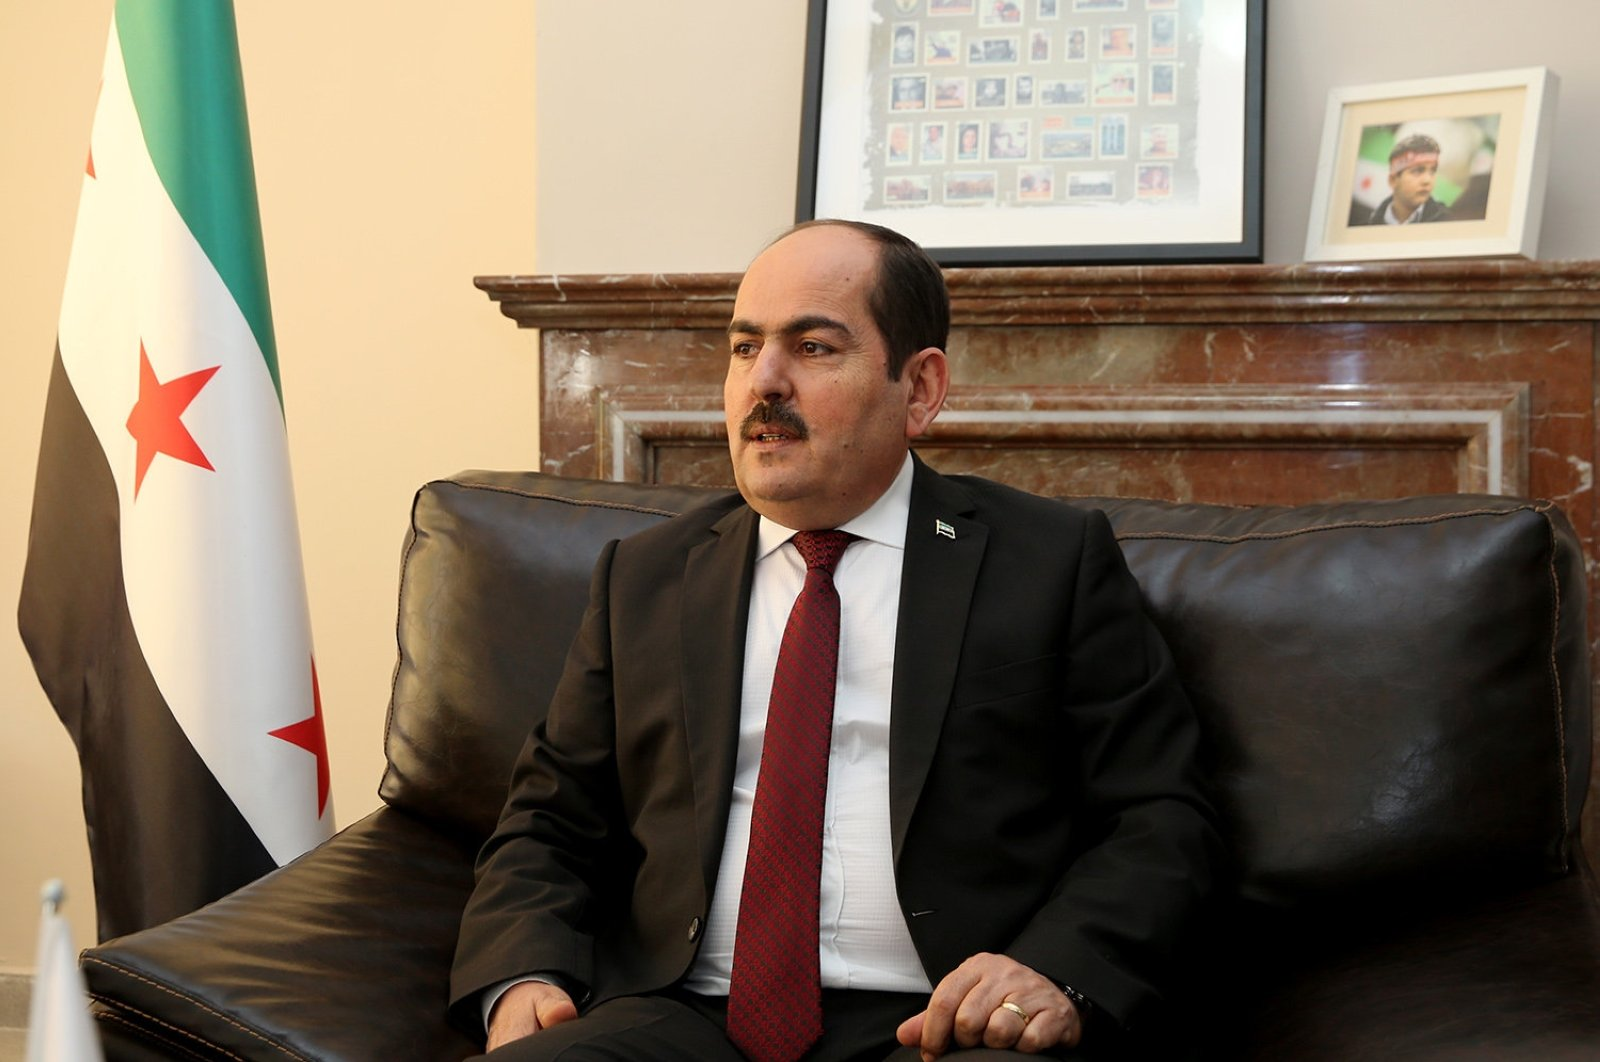 Abdurrahman Mustafa, head of the Syrian Interim Government, speaks during an interview with Daily Sabah, Sept.17, 2018. (Daily Sabah)